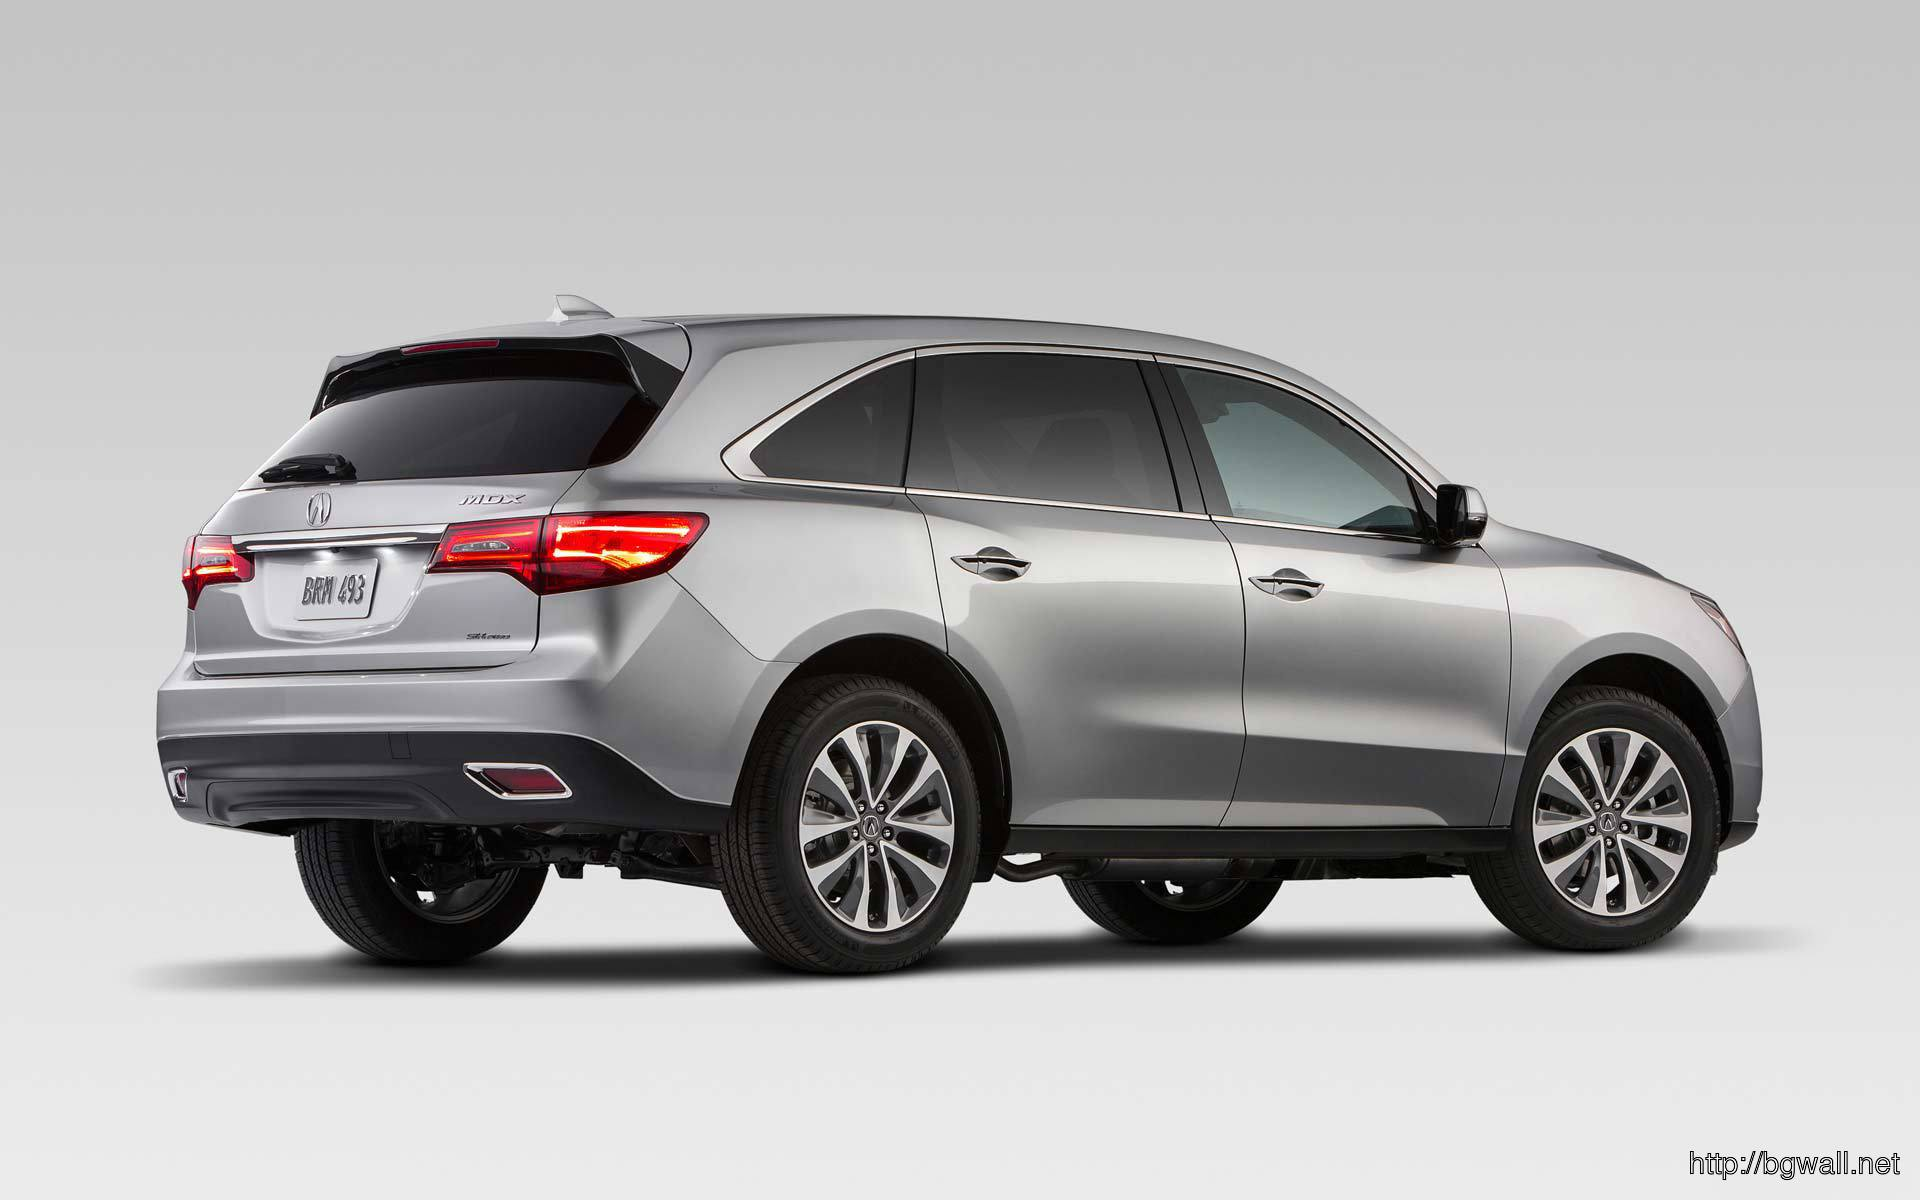 2014 Acura Mdx Redesign 1024 215 640 2014 Acura Mdx Background Wallpaper Hd